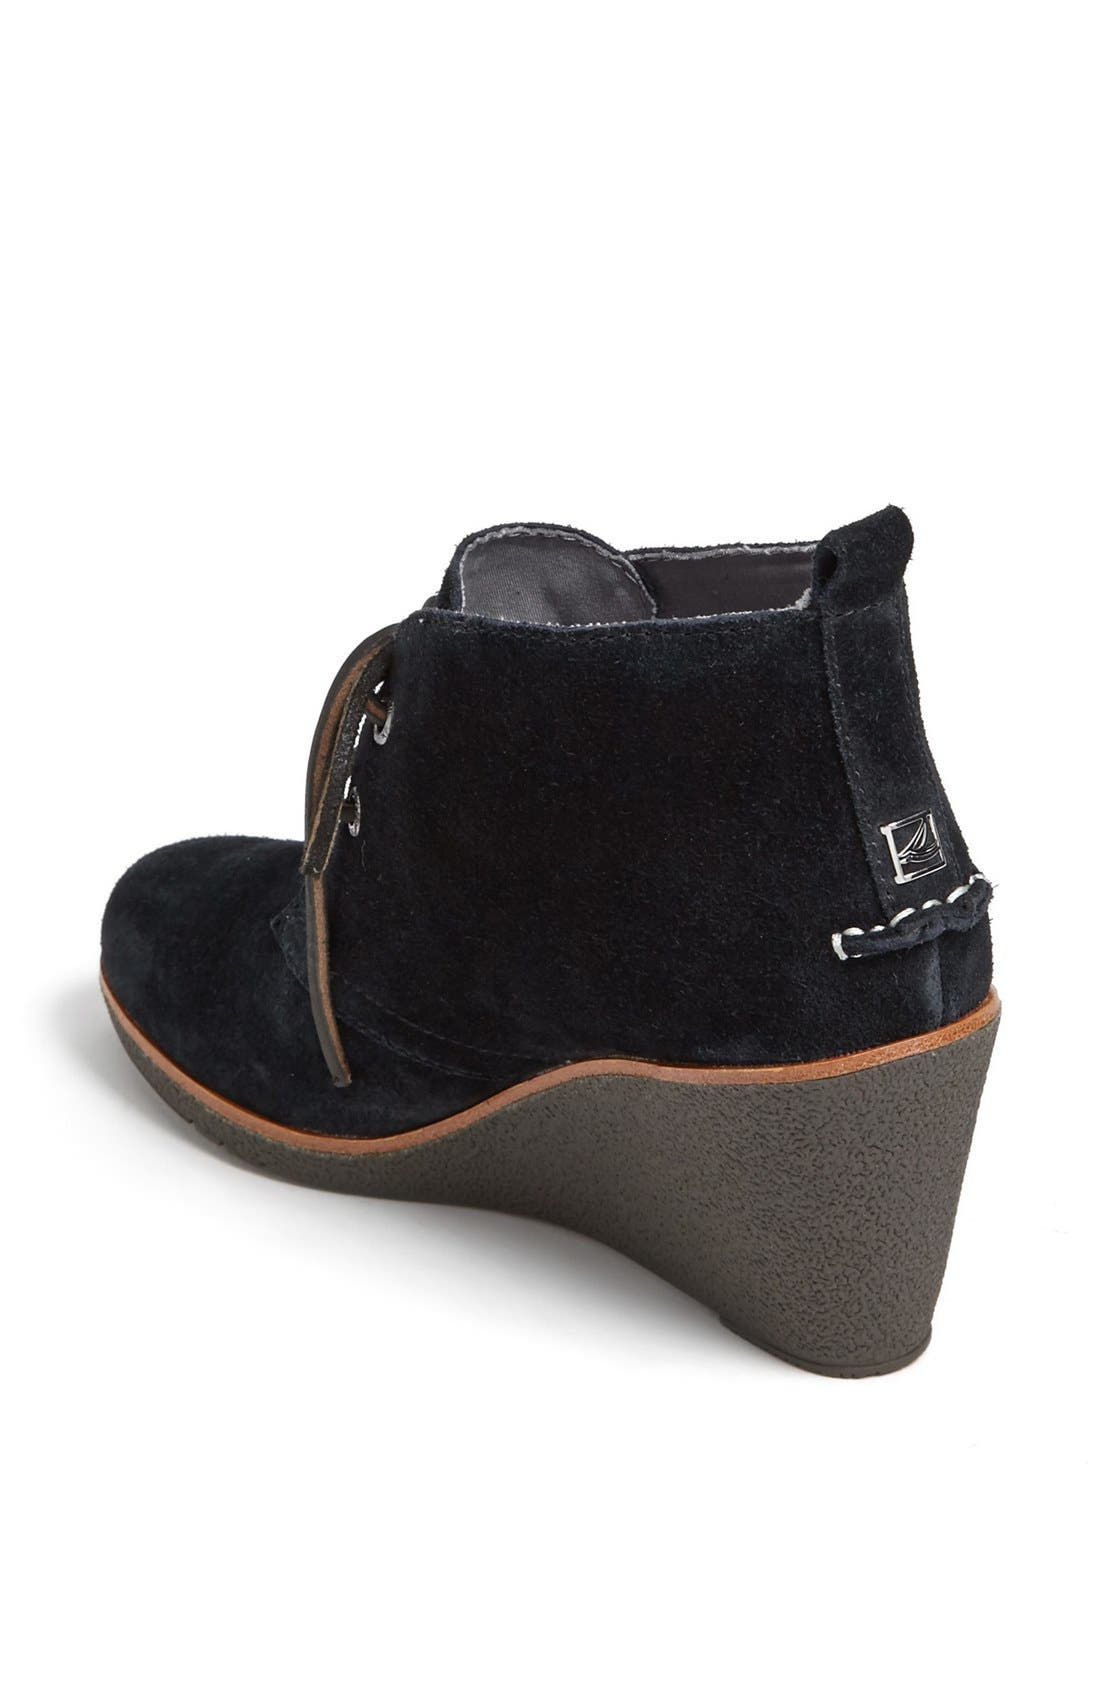 Top Sider<sup>®</sup> 'Harlow' Bootie,                             Alternate thumbnail 4, color,                             001